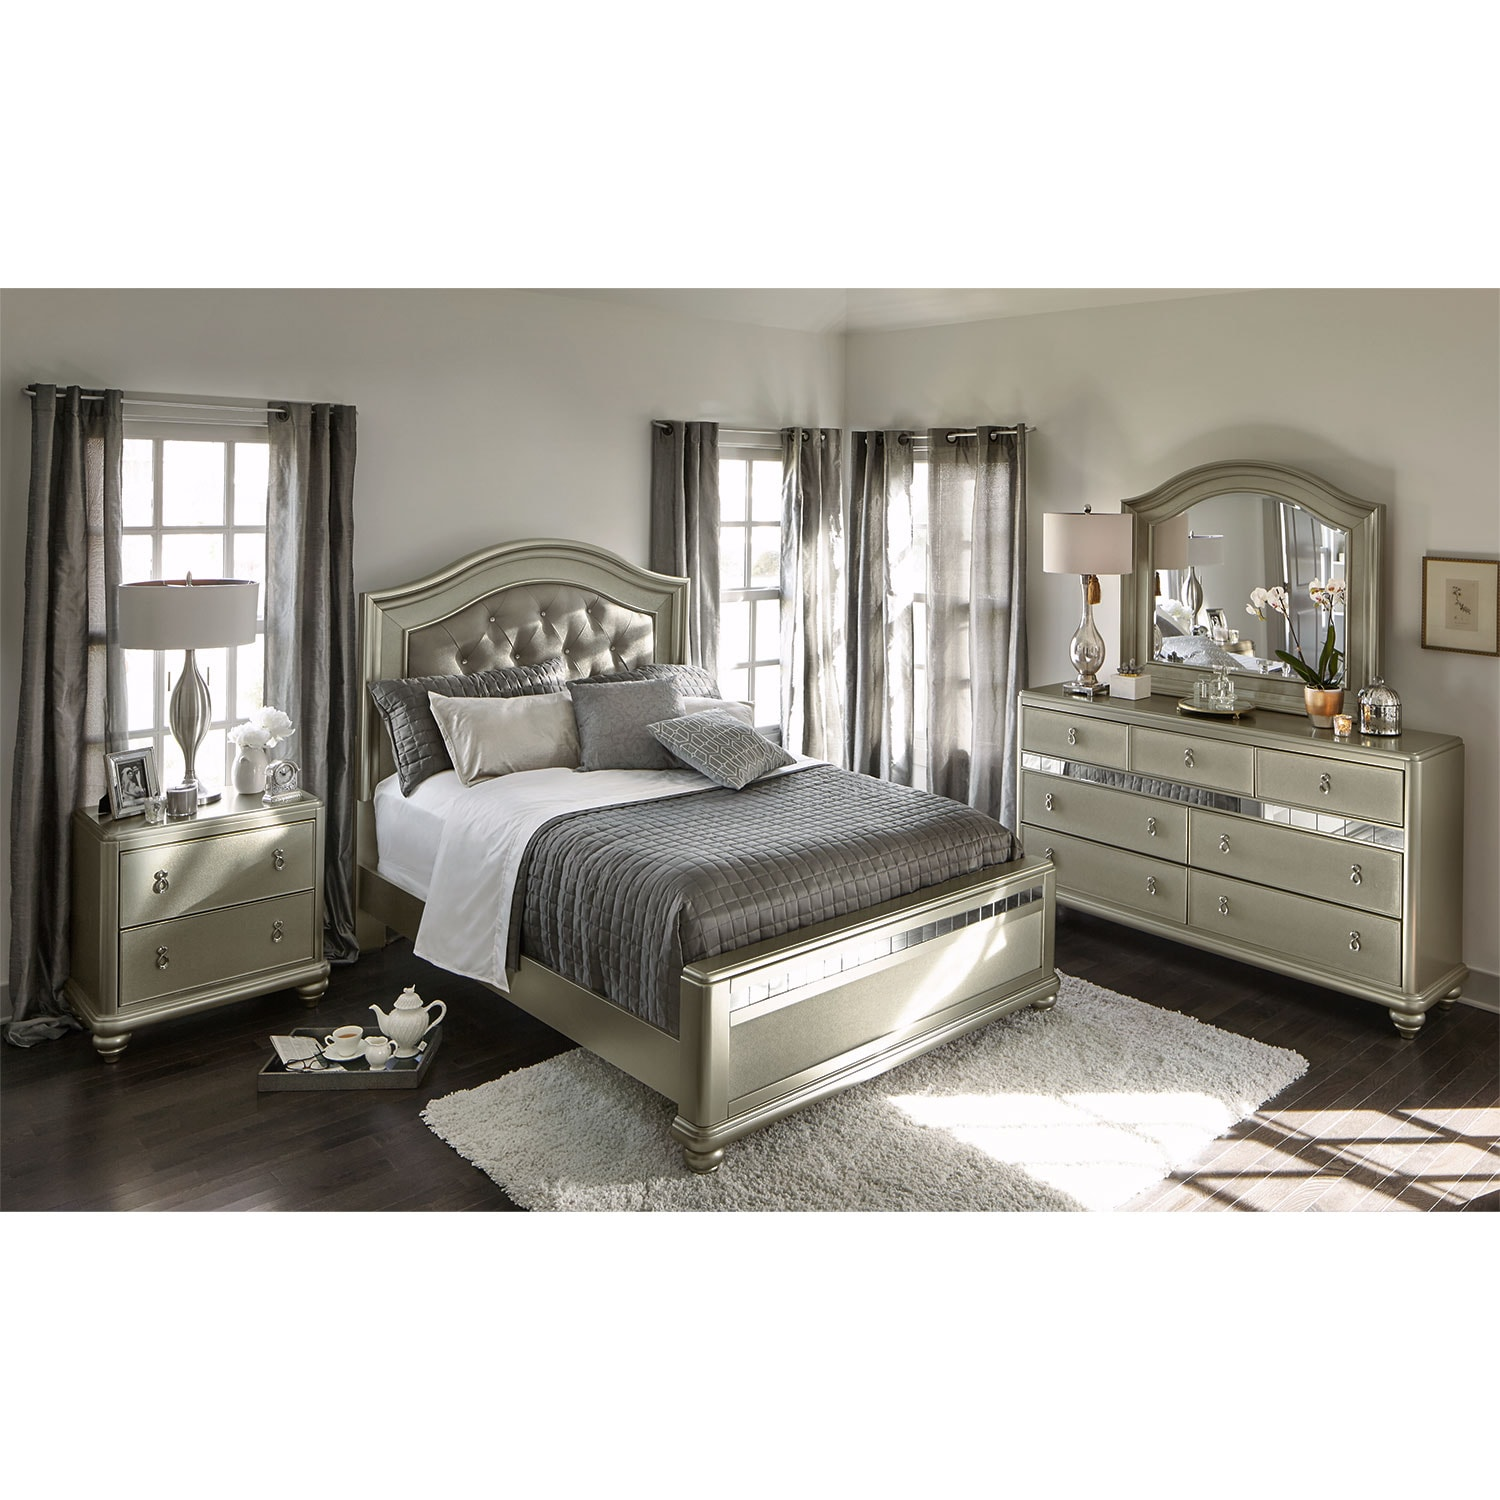 american bedroom sets. serena queen 6-piece bedroom set - platinum by factory outlet american sets